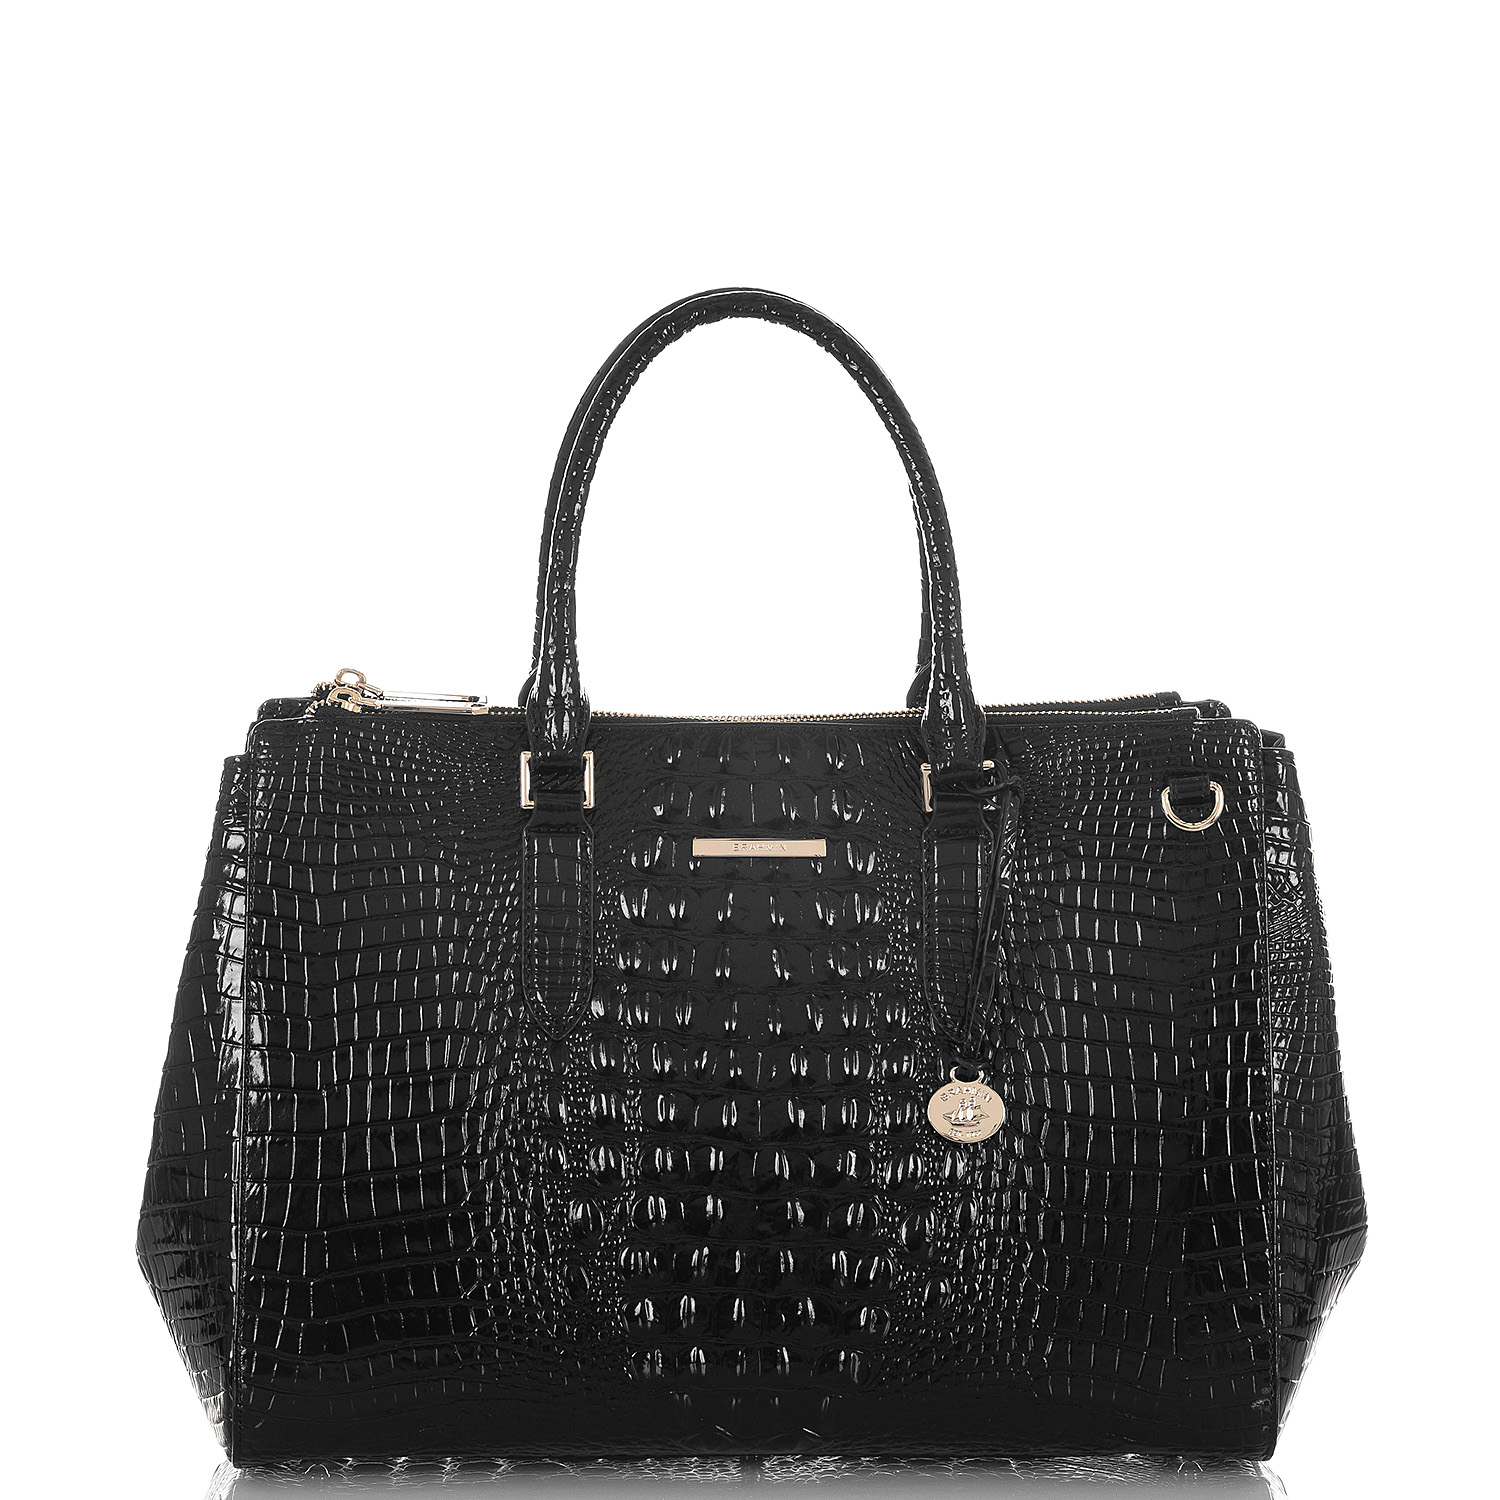 Blake Satchel Black Melbourne